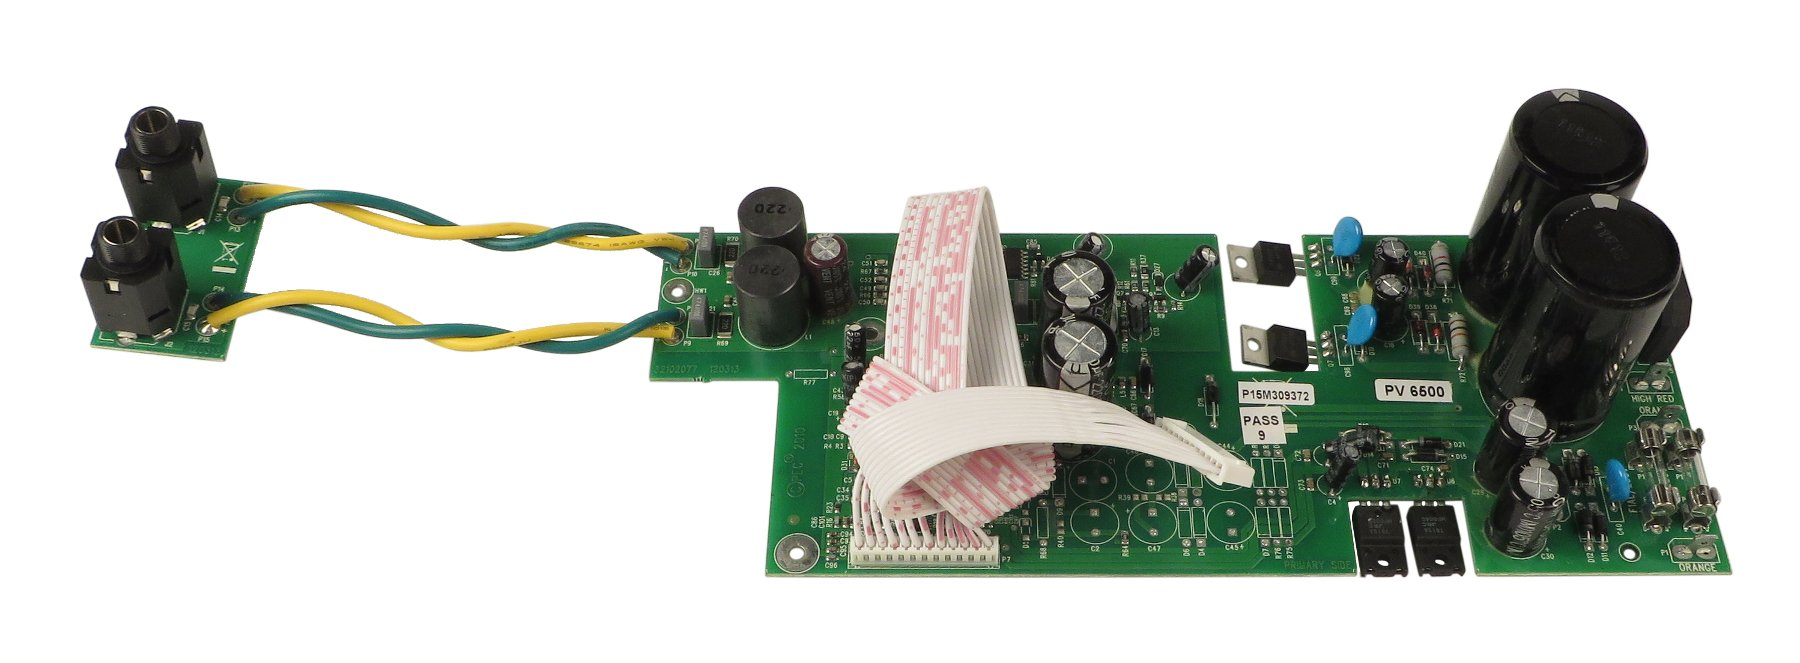 Power Amp Supply PCB Assembly for PV6500